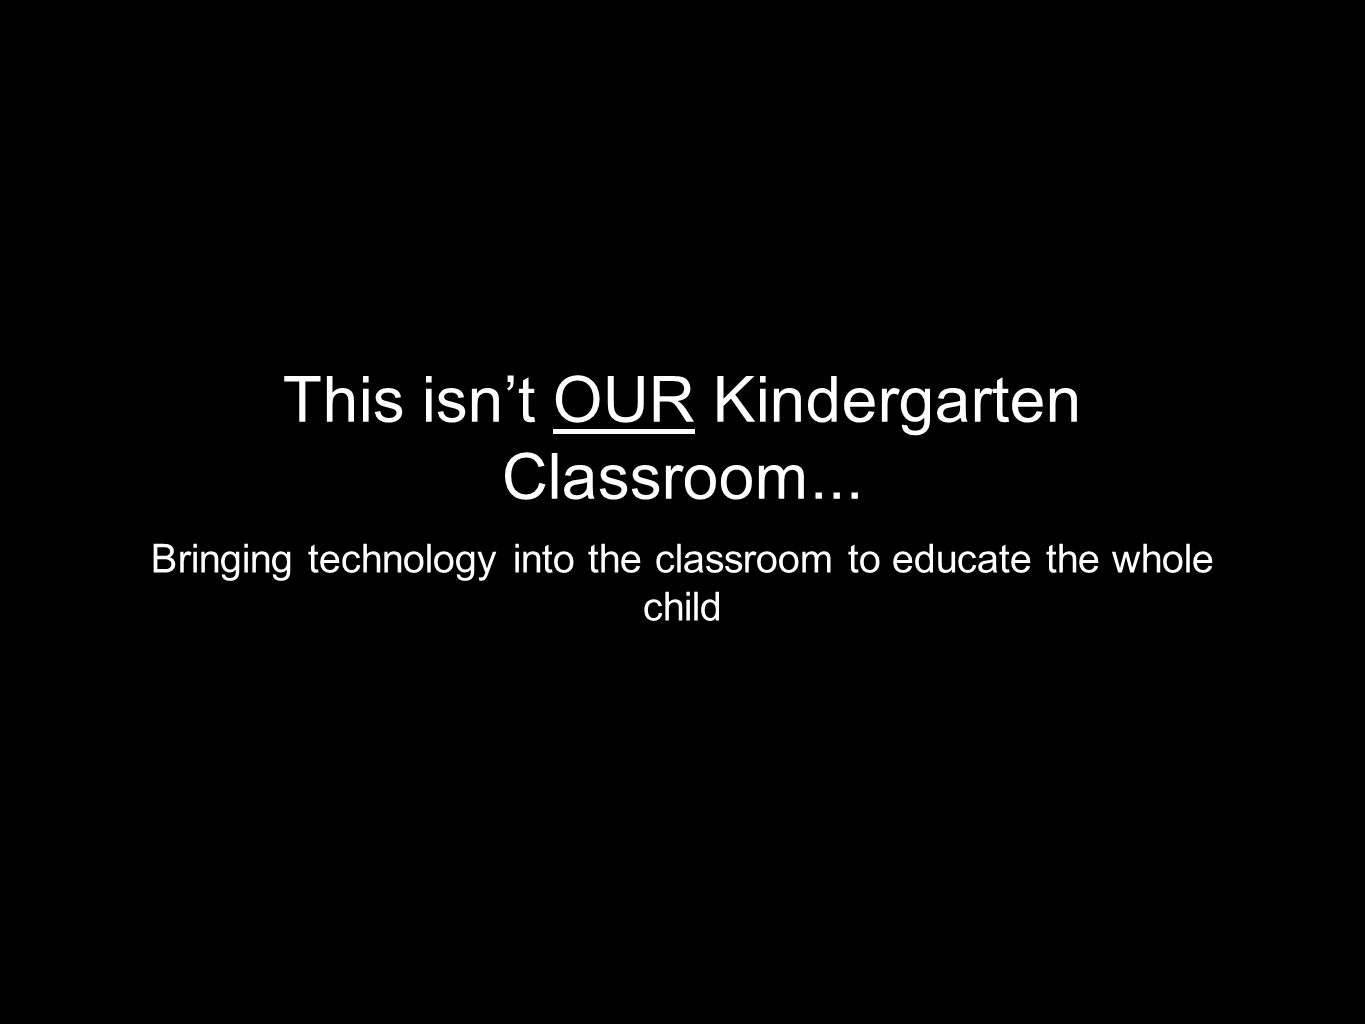 This isn't OUR Kindergarten Classroom... Bringing technology into the classroom to educate the whole child